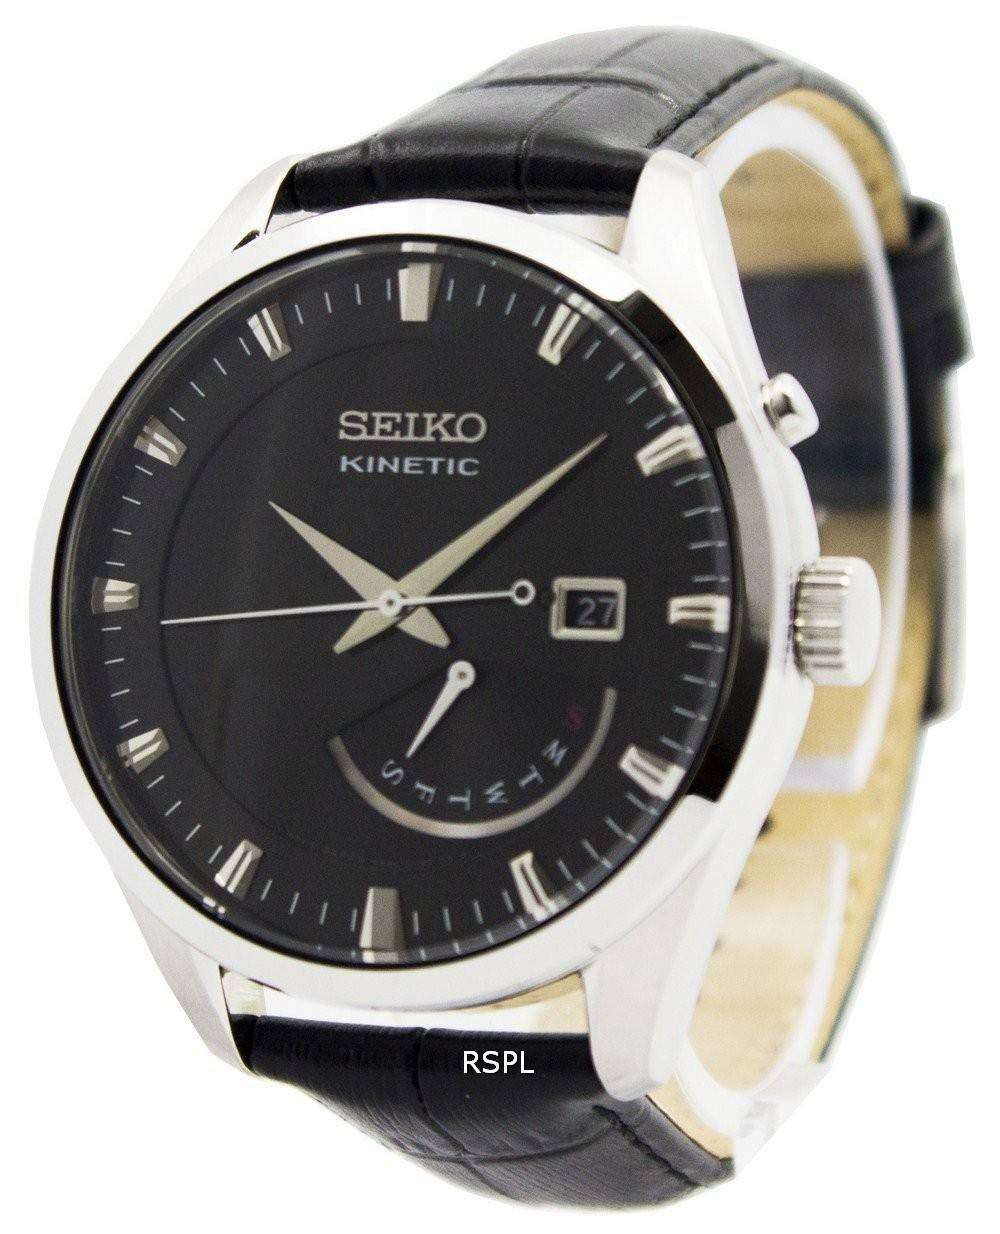 Seiko kinetic leather strap srn045p2 men 39 s watch downunderwatches for Seiko kinetic watches